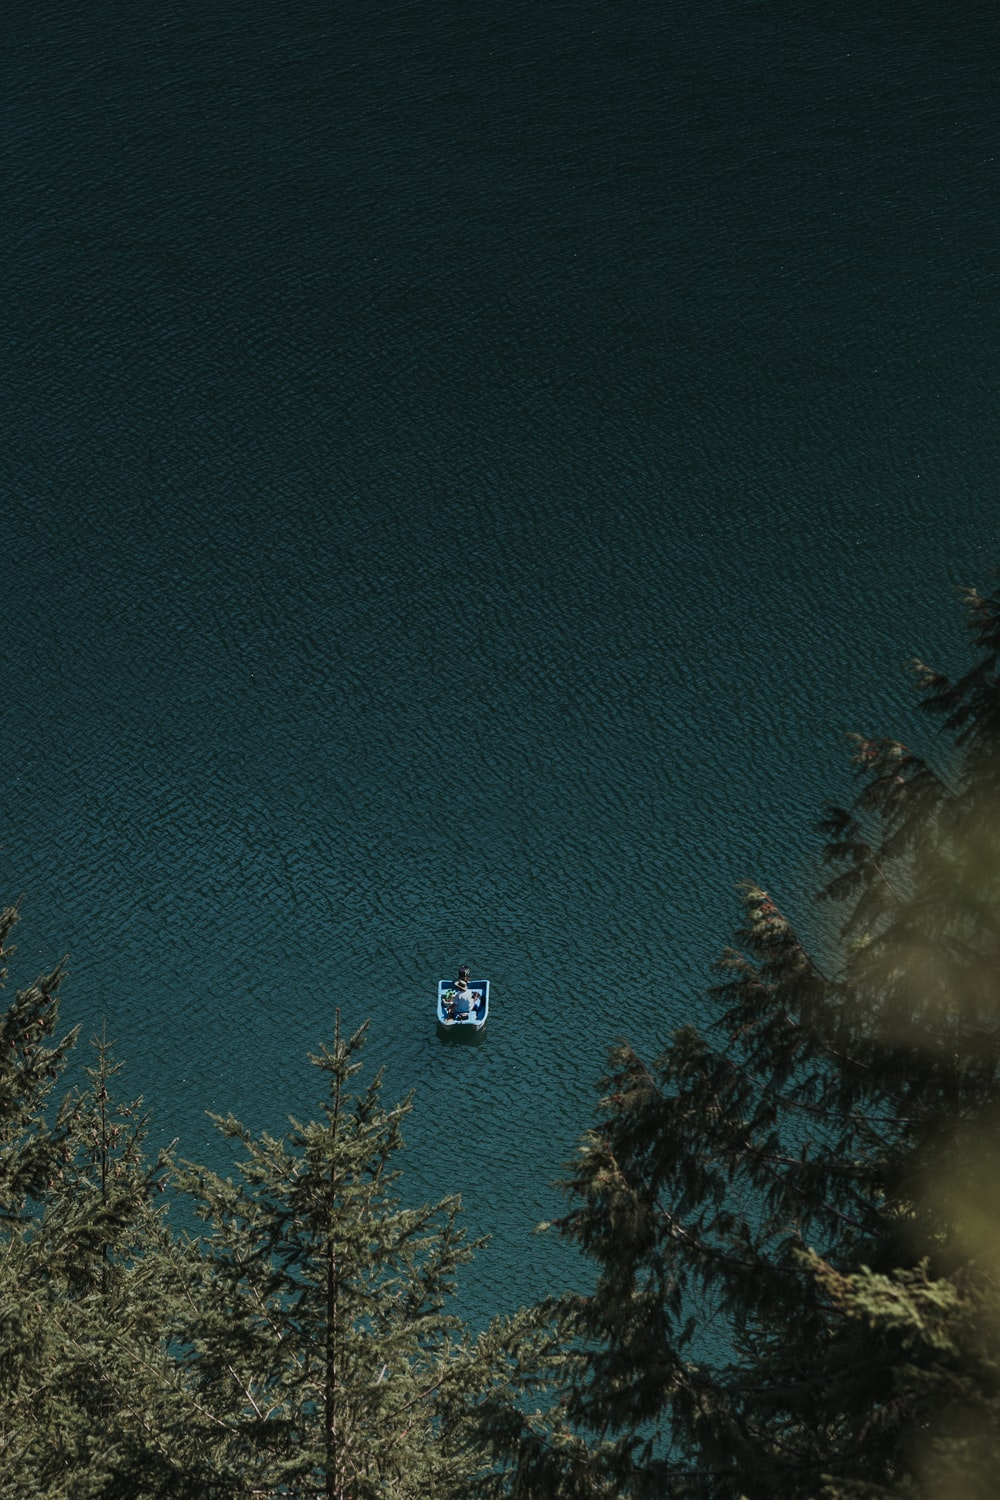 bird's eye view of person on boat on calm body of water